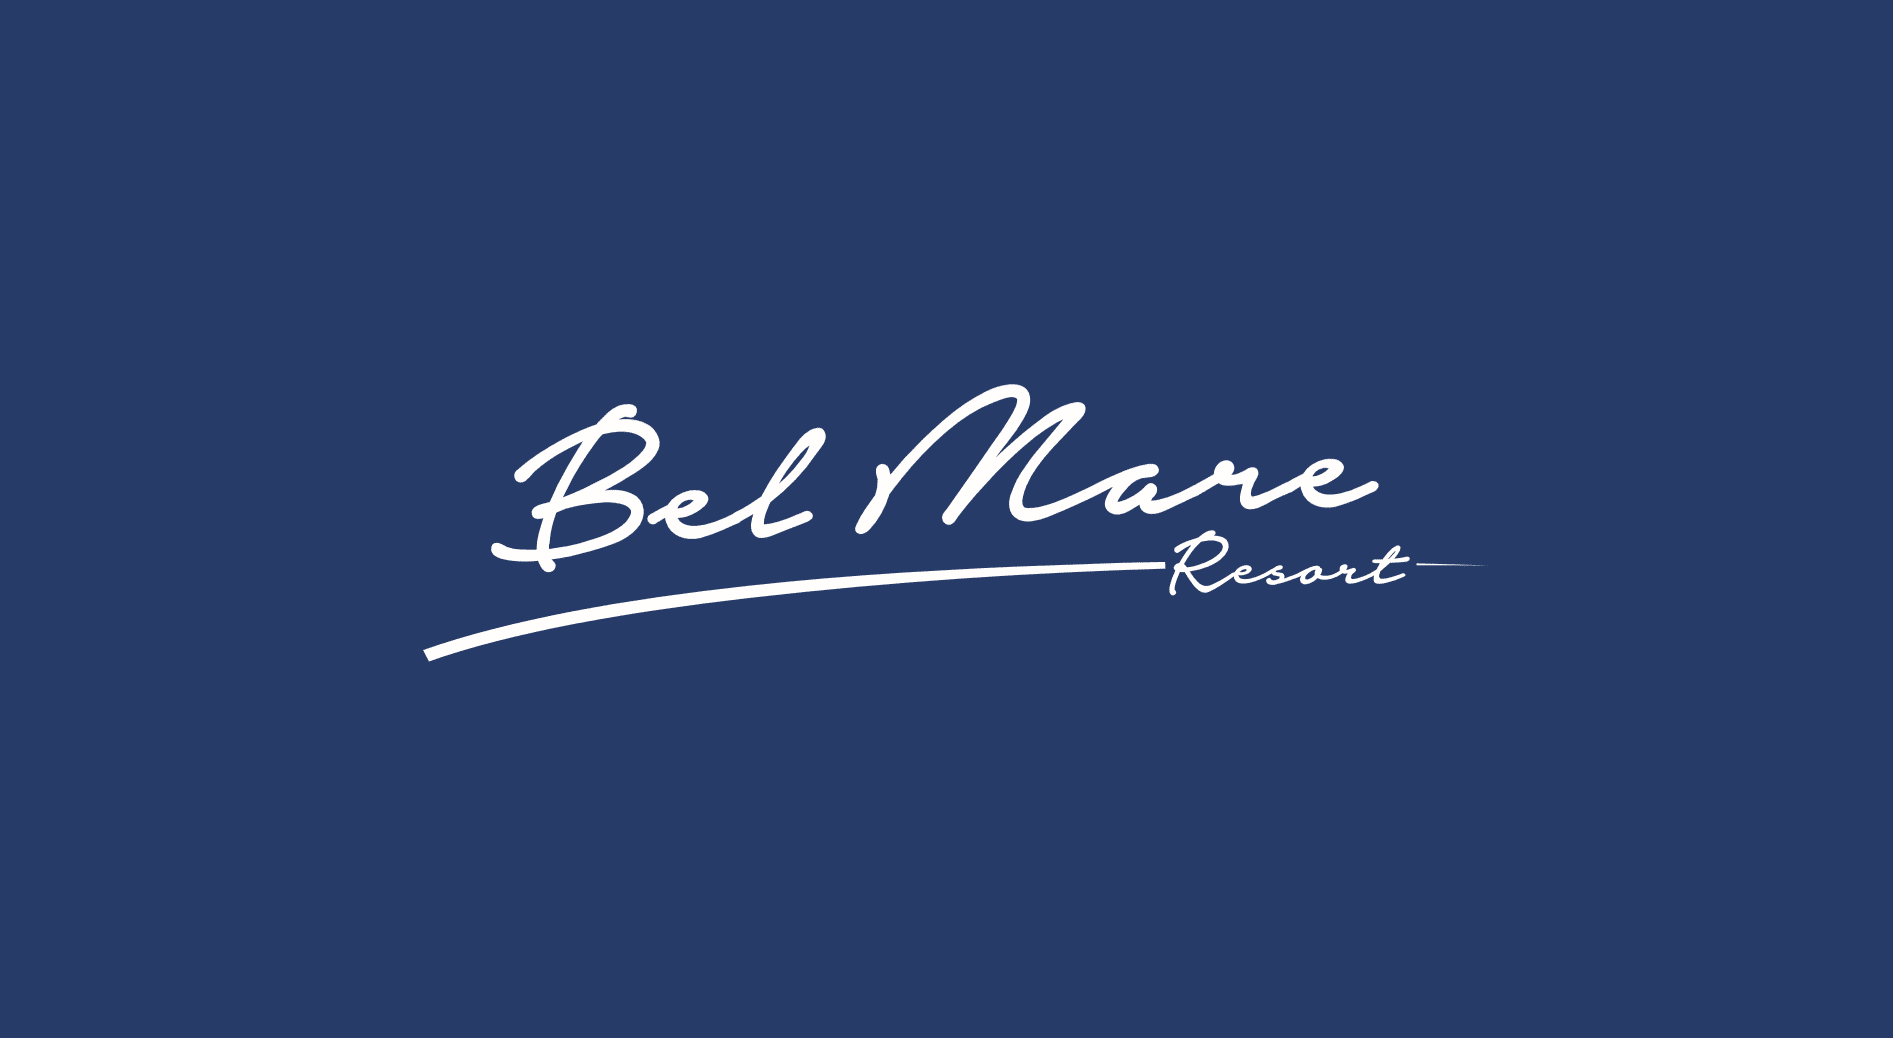 Bel Mare Resort